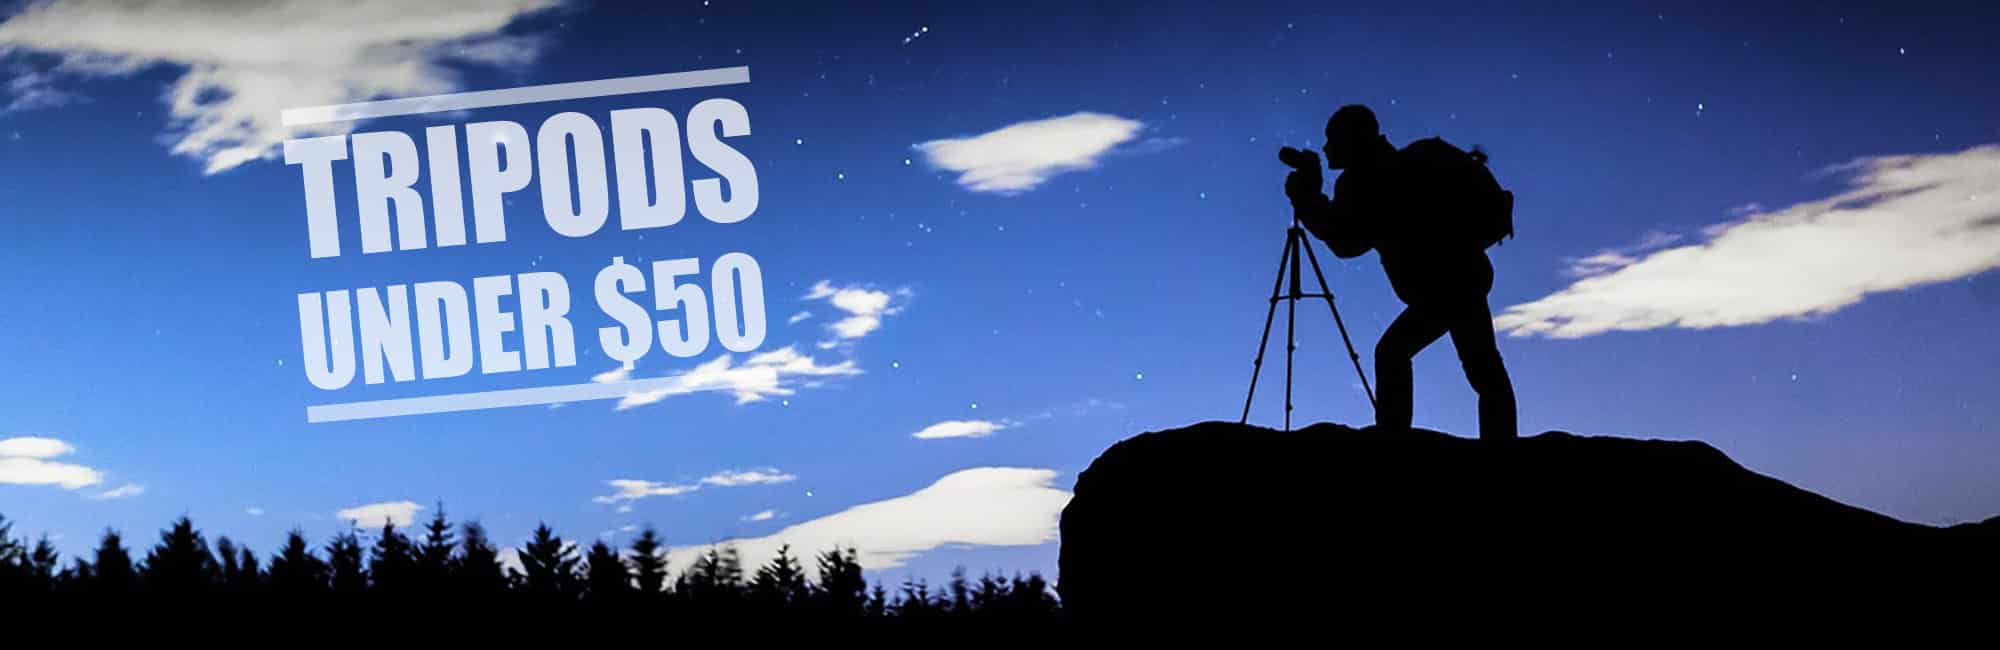 Best tripods under 50 - header